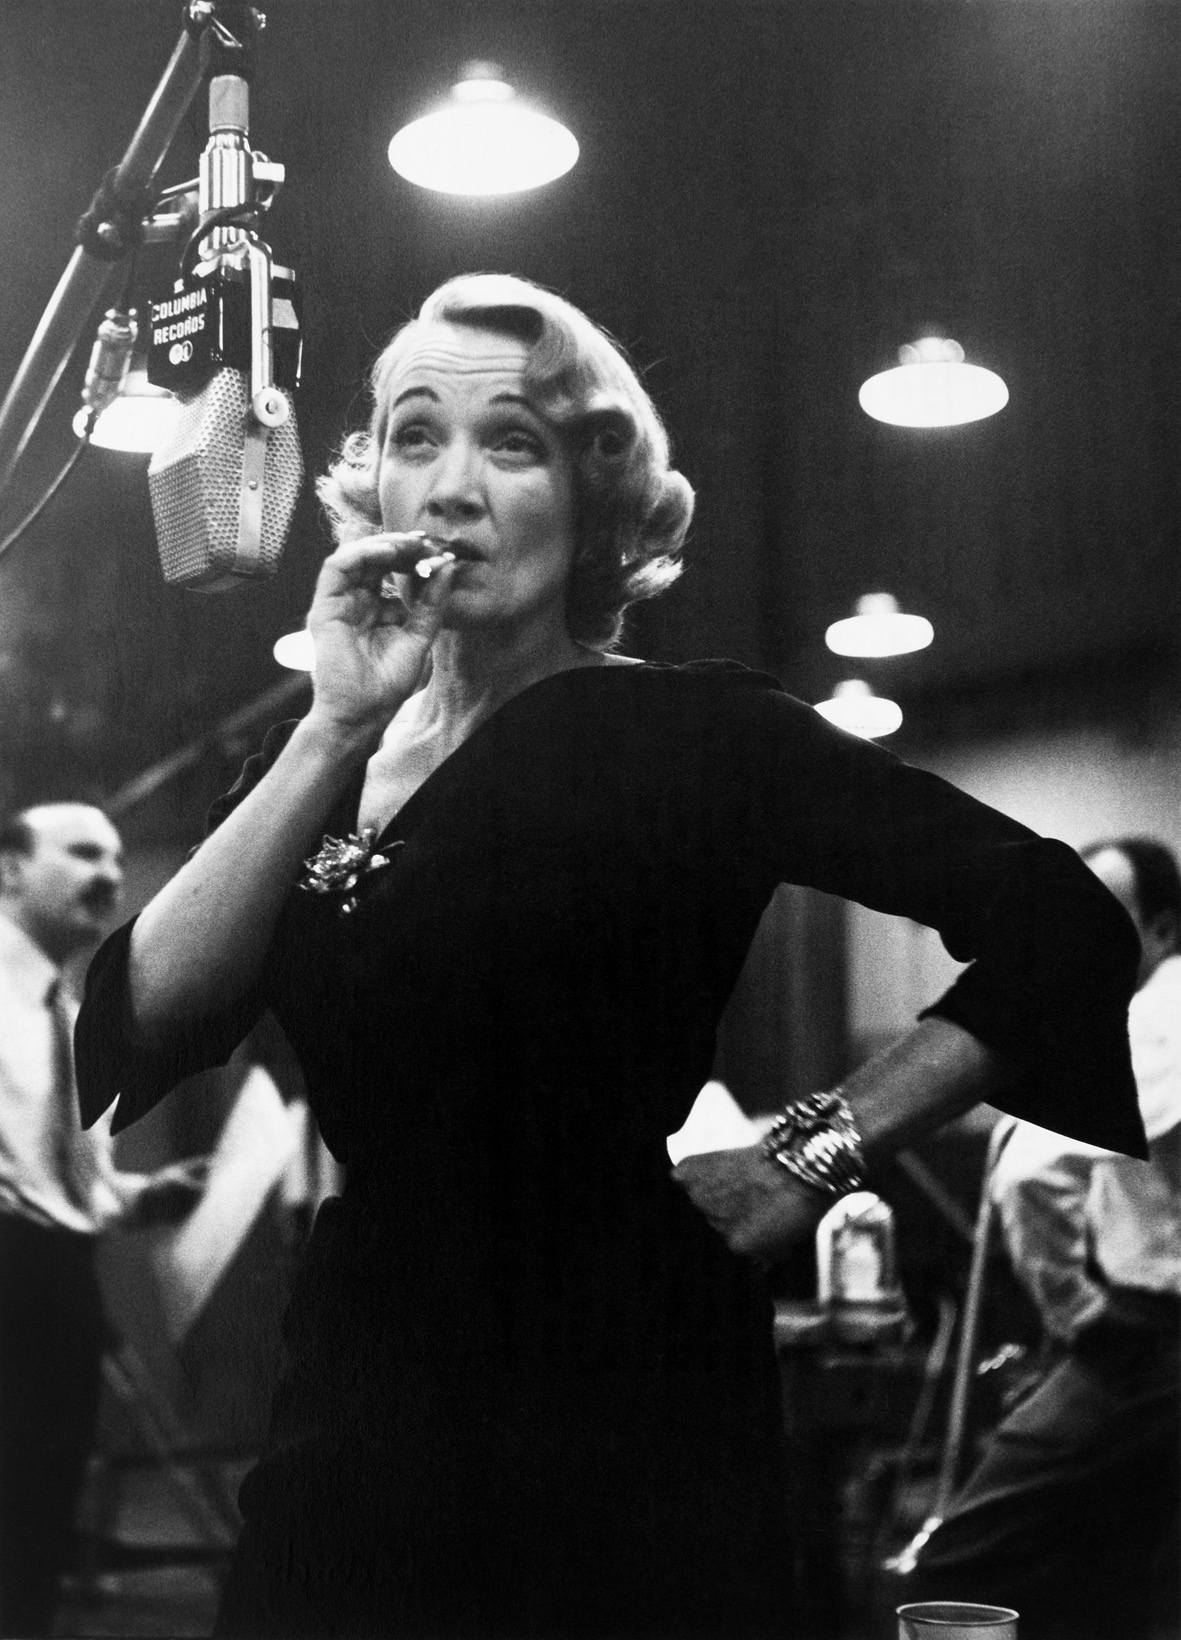 Marlene Dietrich at Columbia records studios, New York, USA, 1952 | © Eve Arnold / Magnum Photos